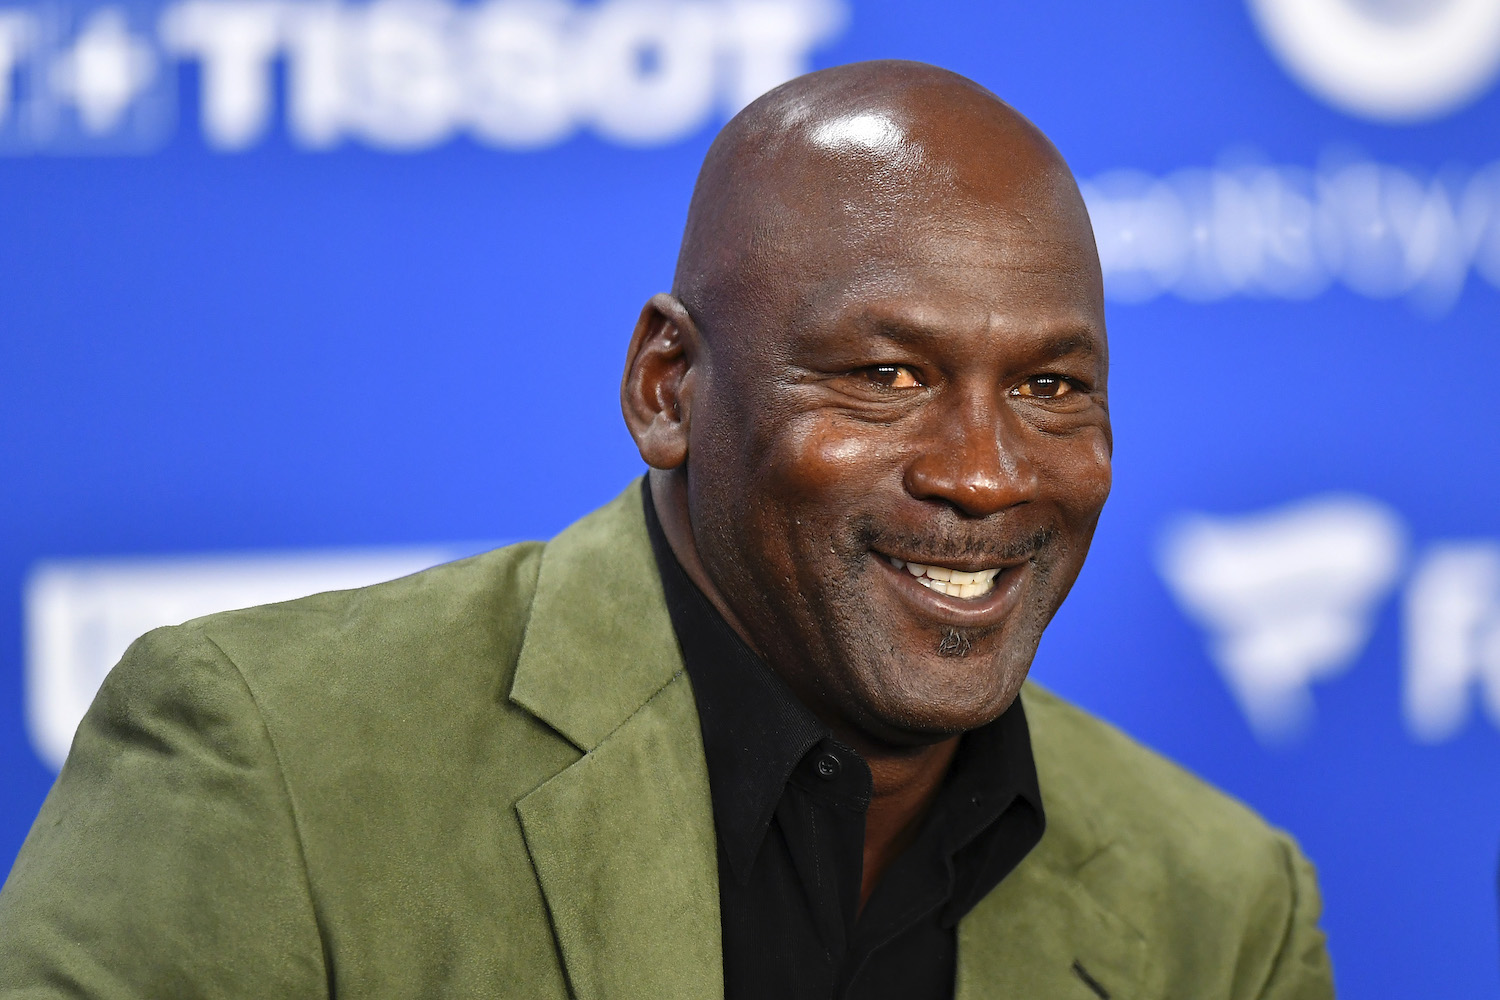 Michael Jordan is sports team owner who didn't make any political contribution